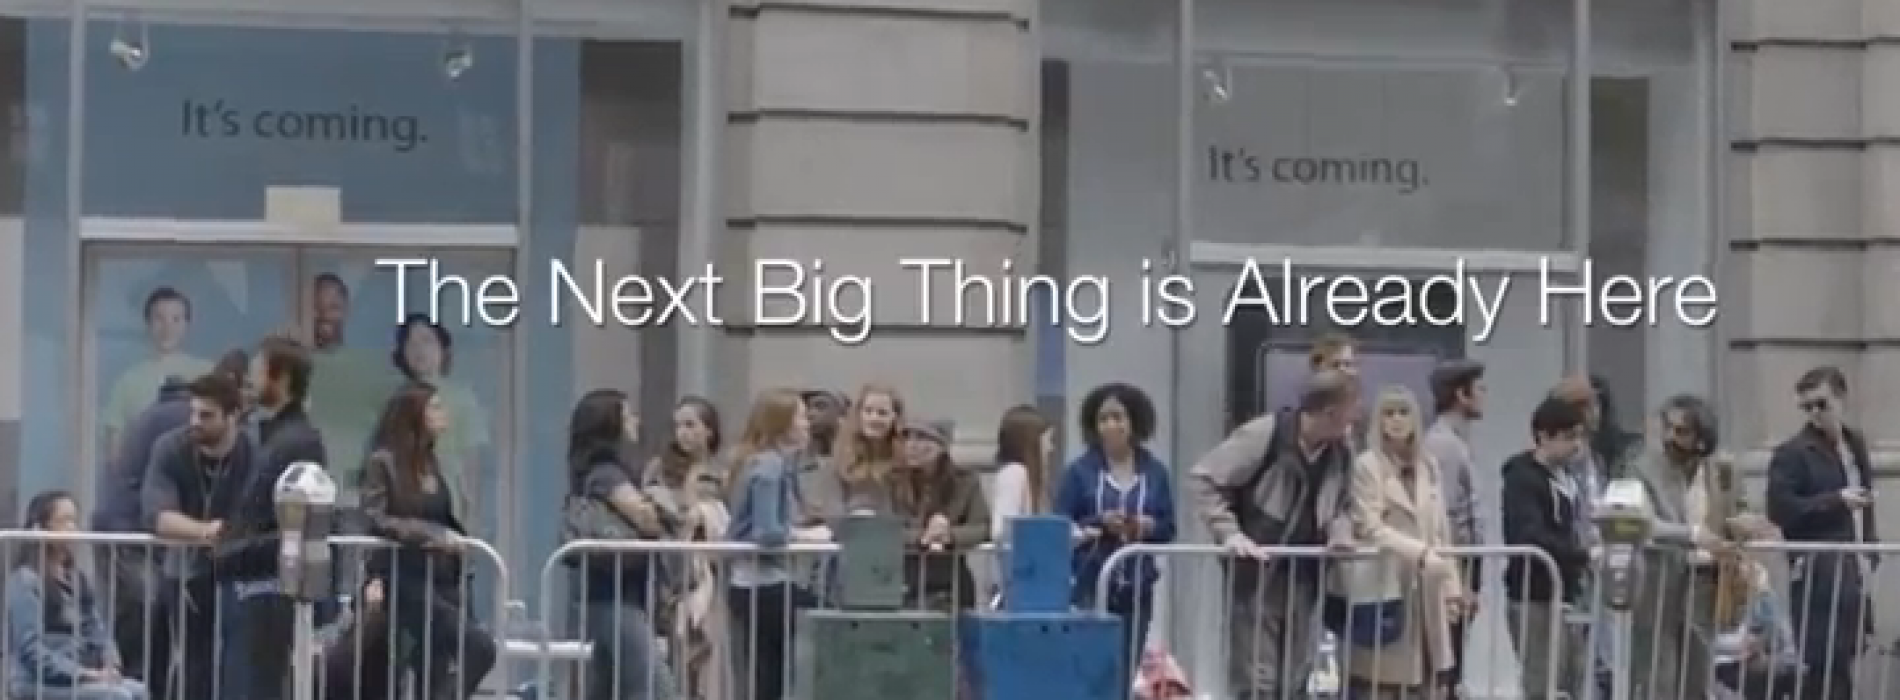 Samsung's 'Next Big Thing' ads get update in wake of iPhone 5